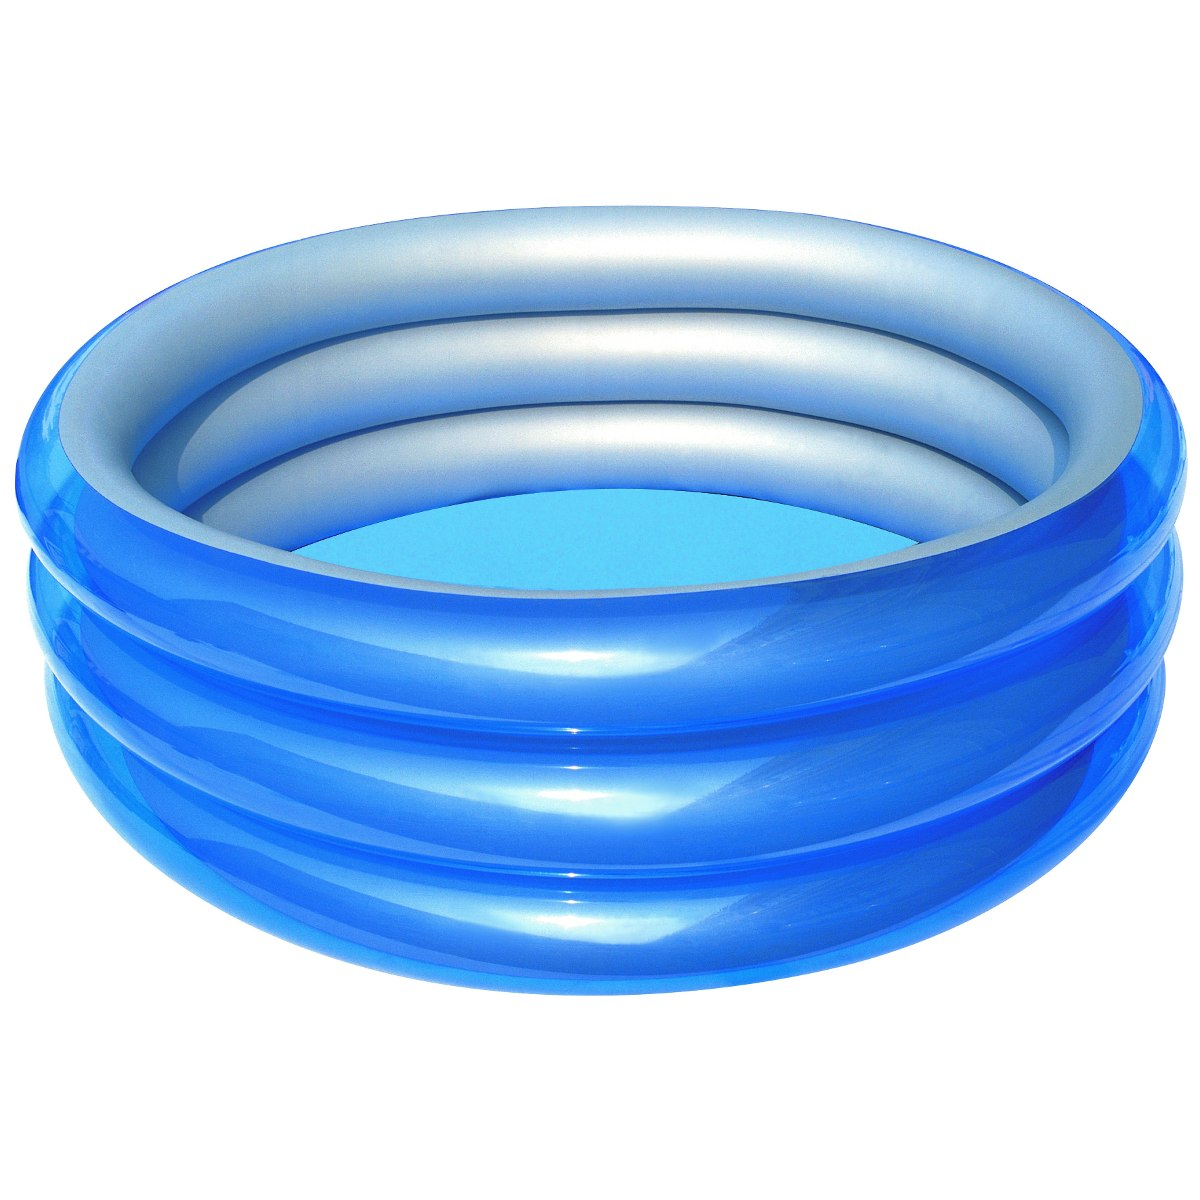 Piscina inflable metalica 3 anillos bestway 51042 19 for Piscina inflable bestway